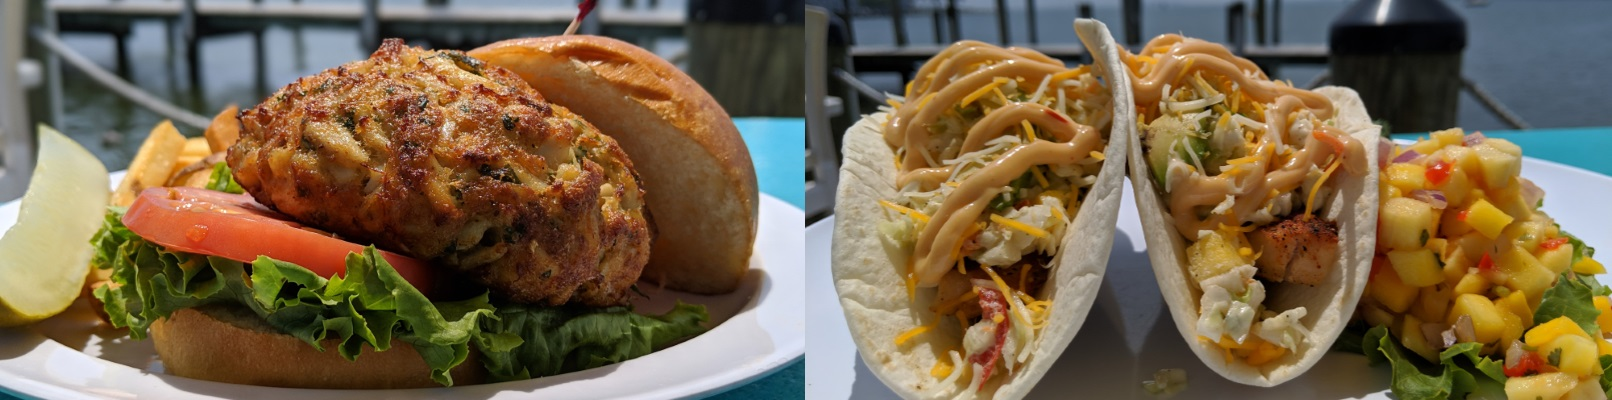 Crab Cake Sandwich / Tropical Fish Tacos